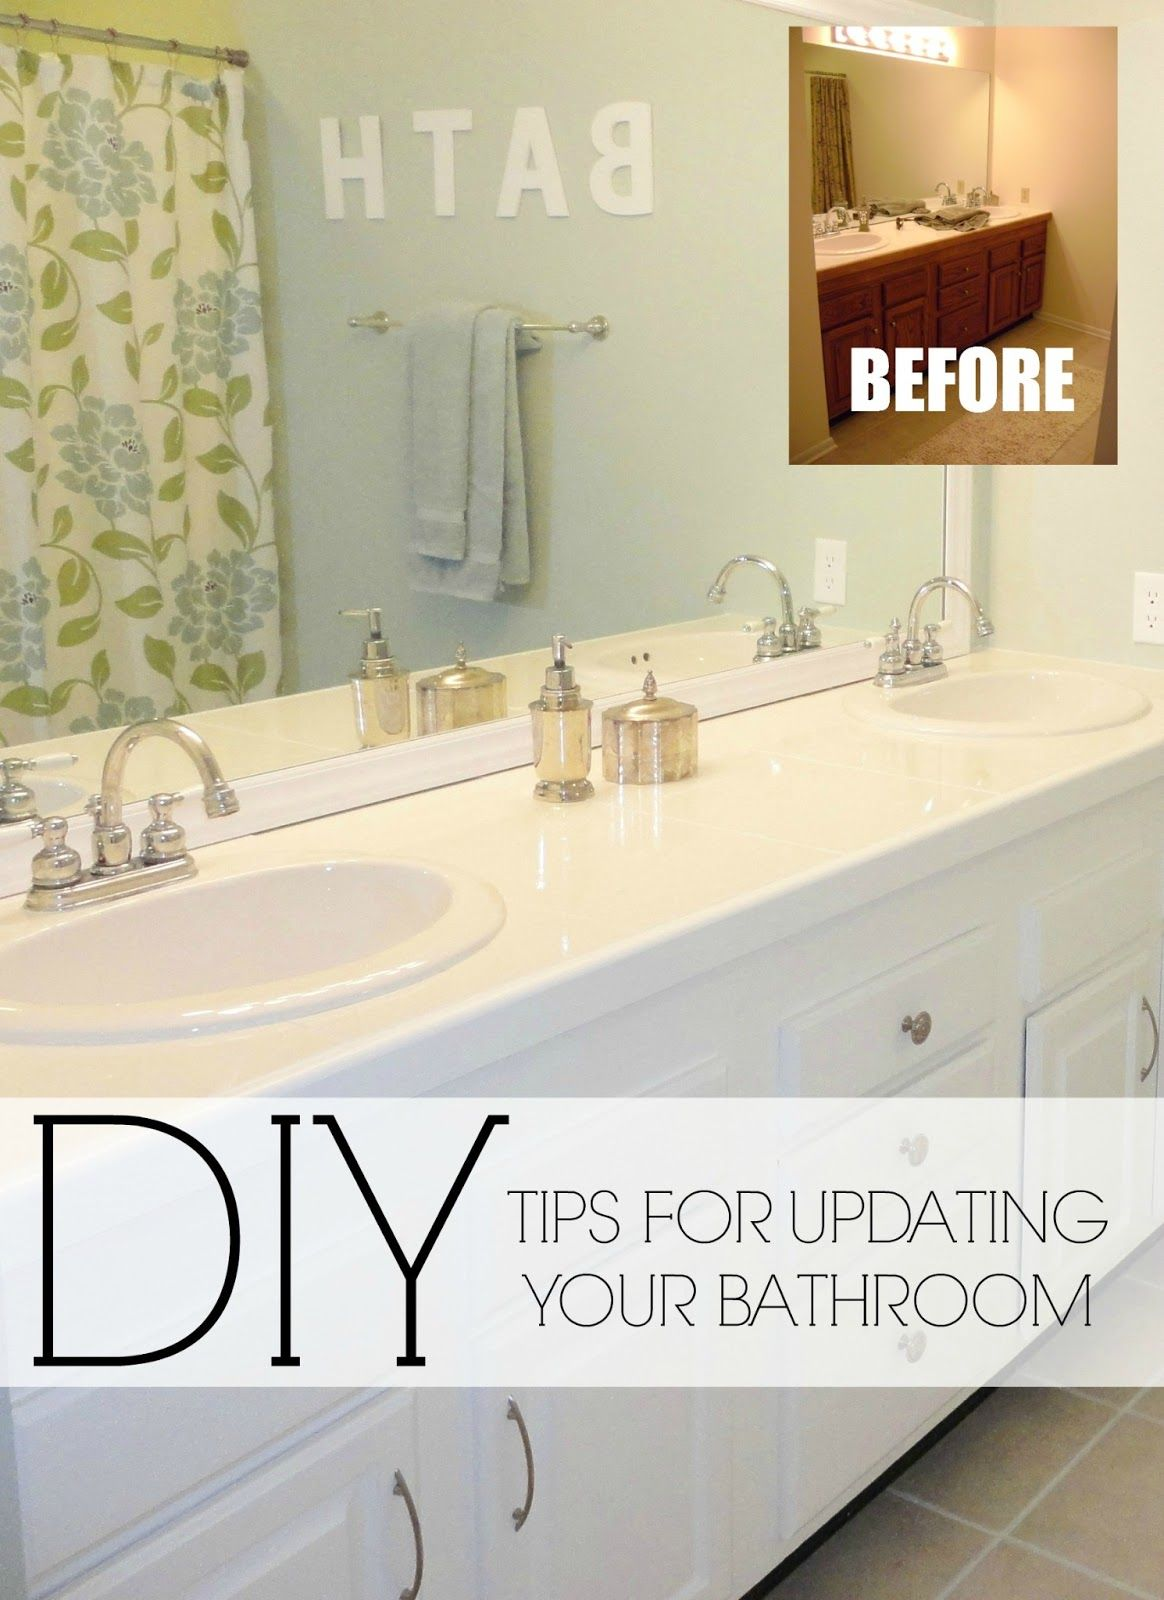 Easy Diy Ideas For Updating Older Bathrooms So Many Great Ideas Including How To Paint Tile Grout And How To Frame In A Mirror